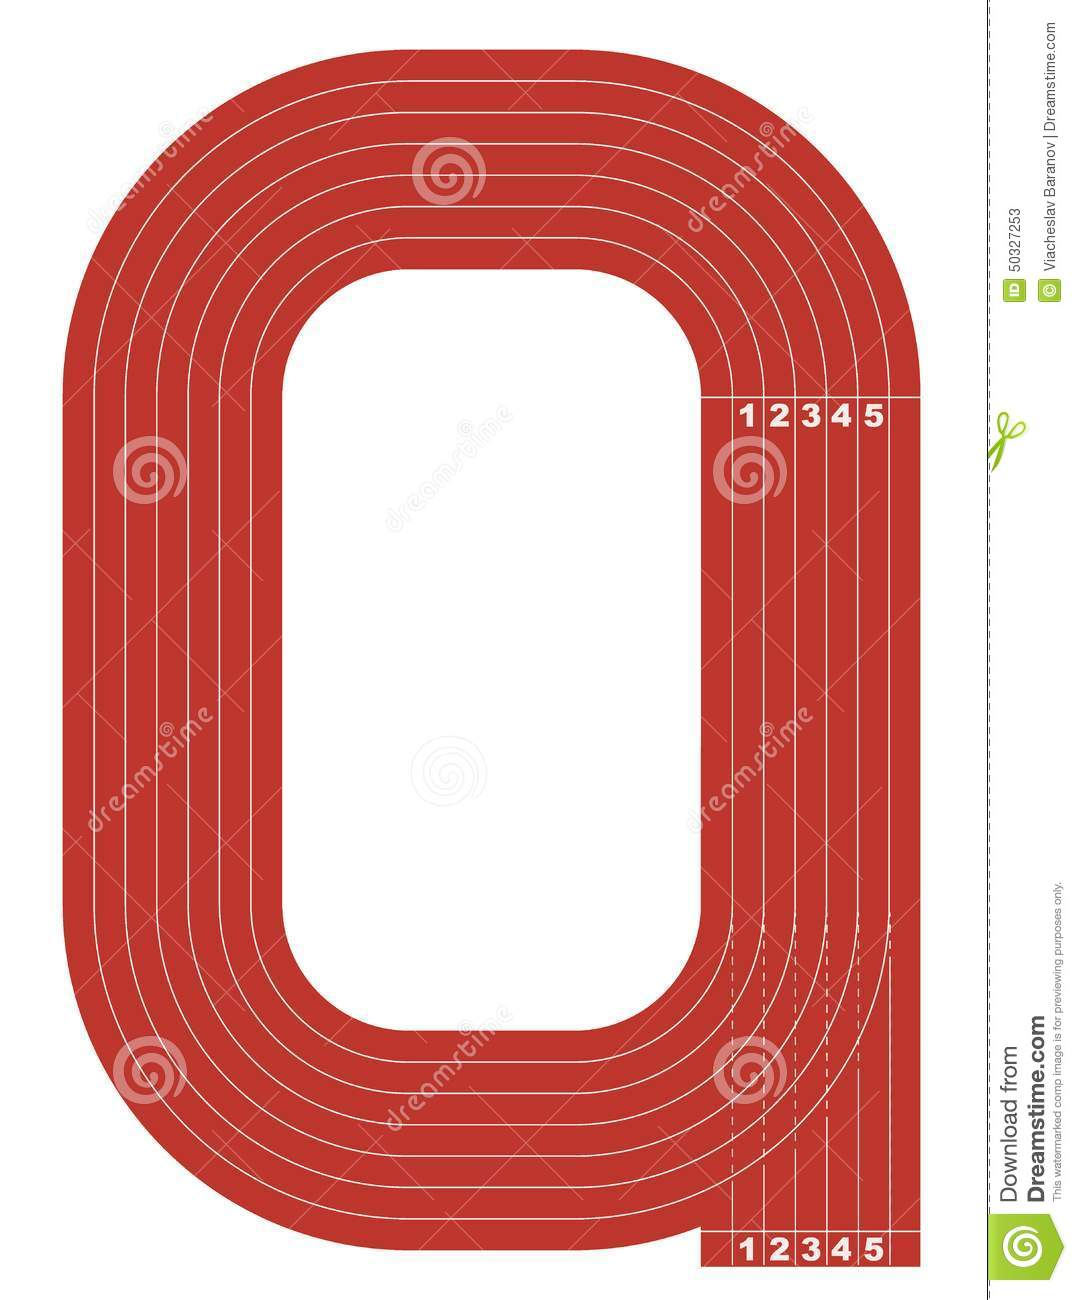 Sample Athletics Track Field In A Simple Outline Stock